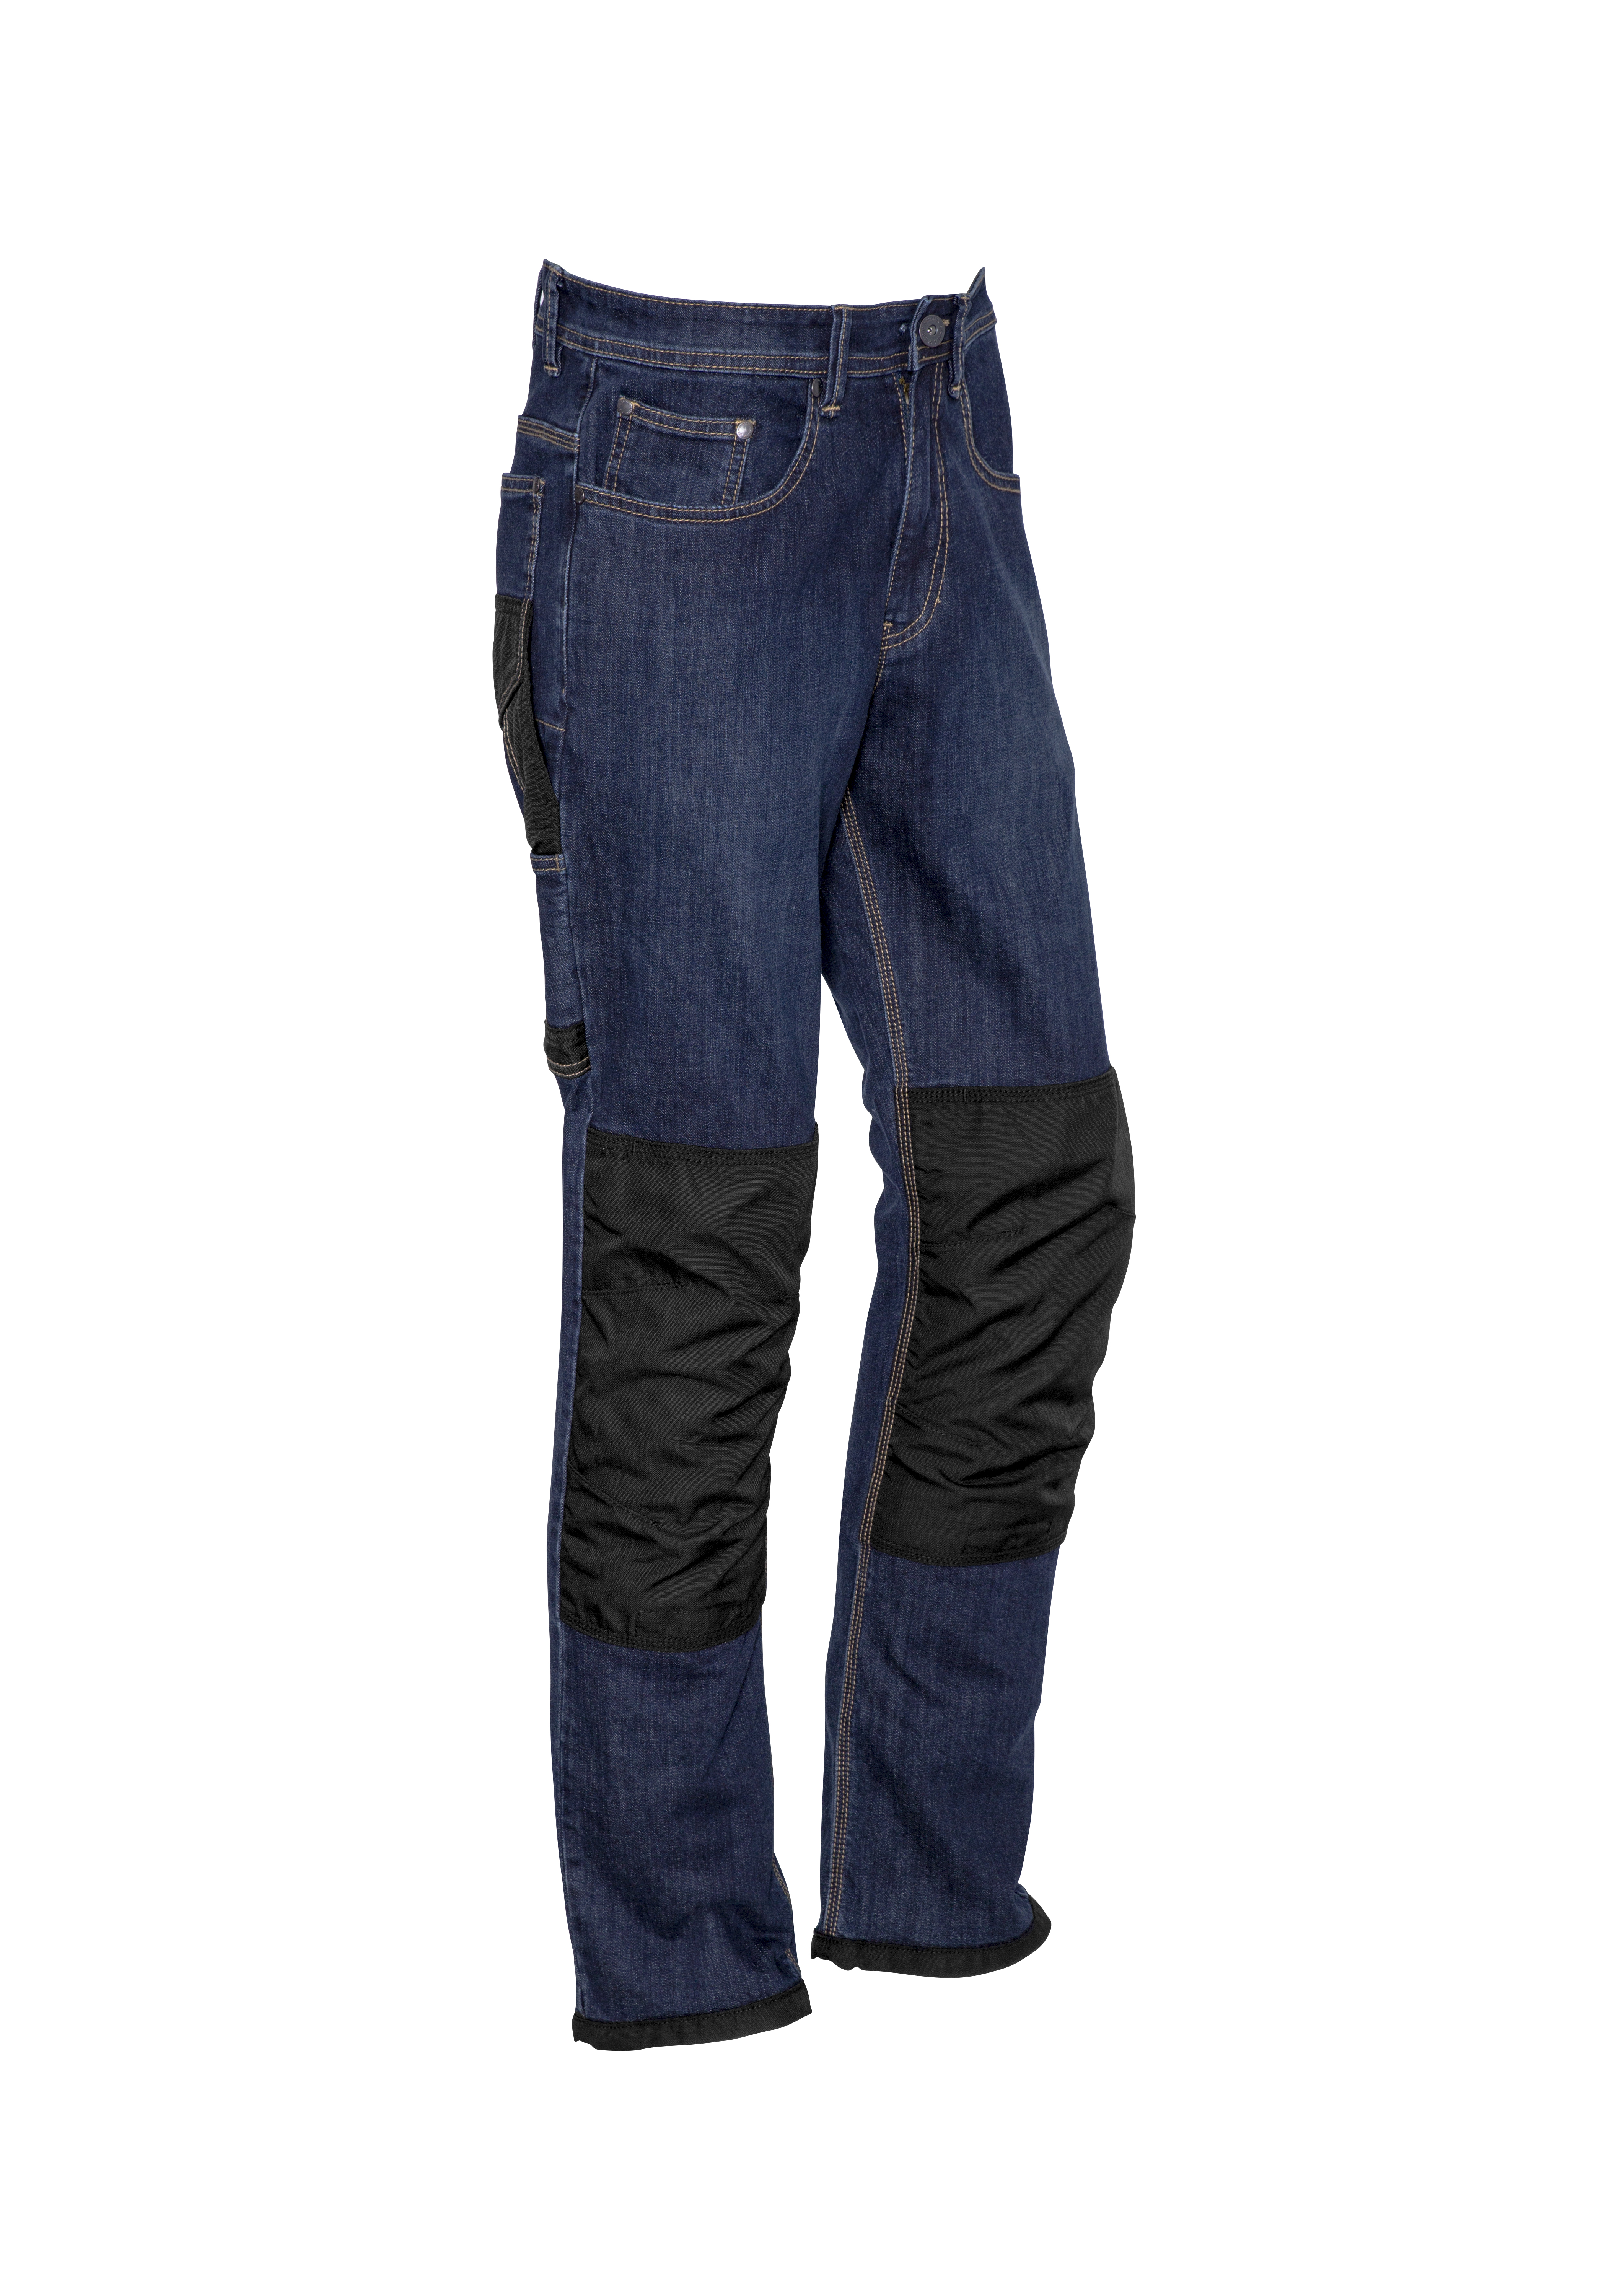 Mens Heavy Duty Cordura Stretch Denim Jeans Blue Denim